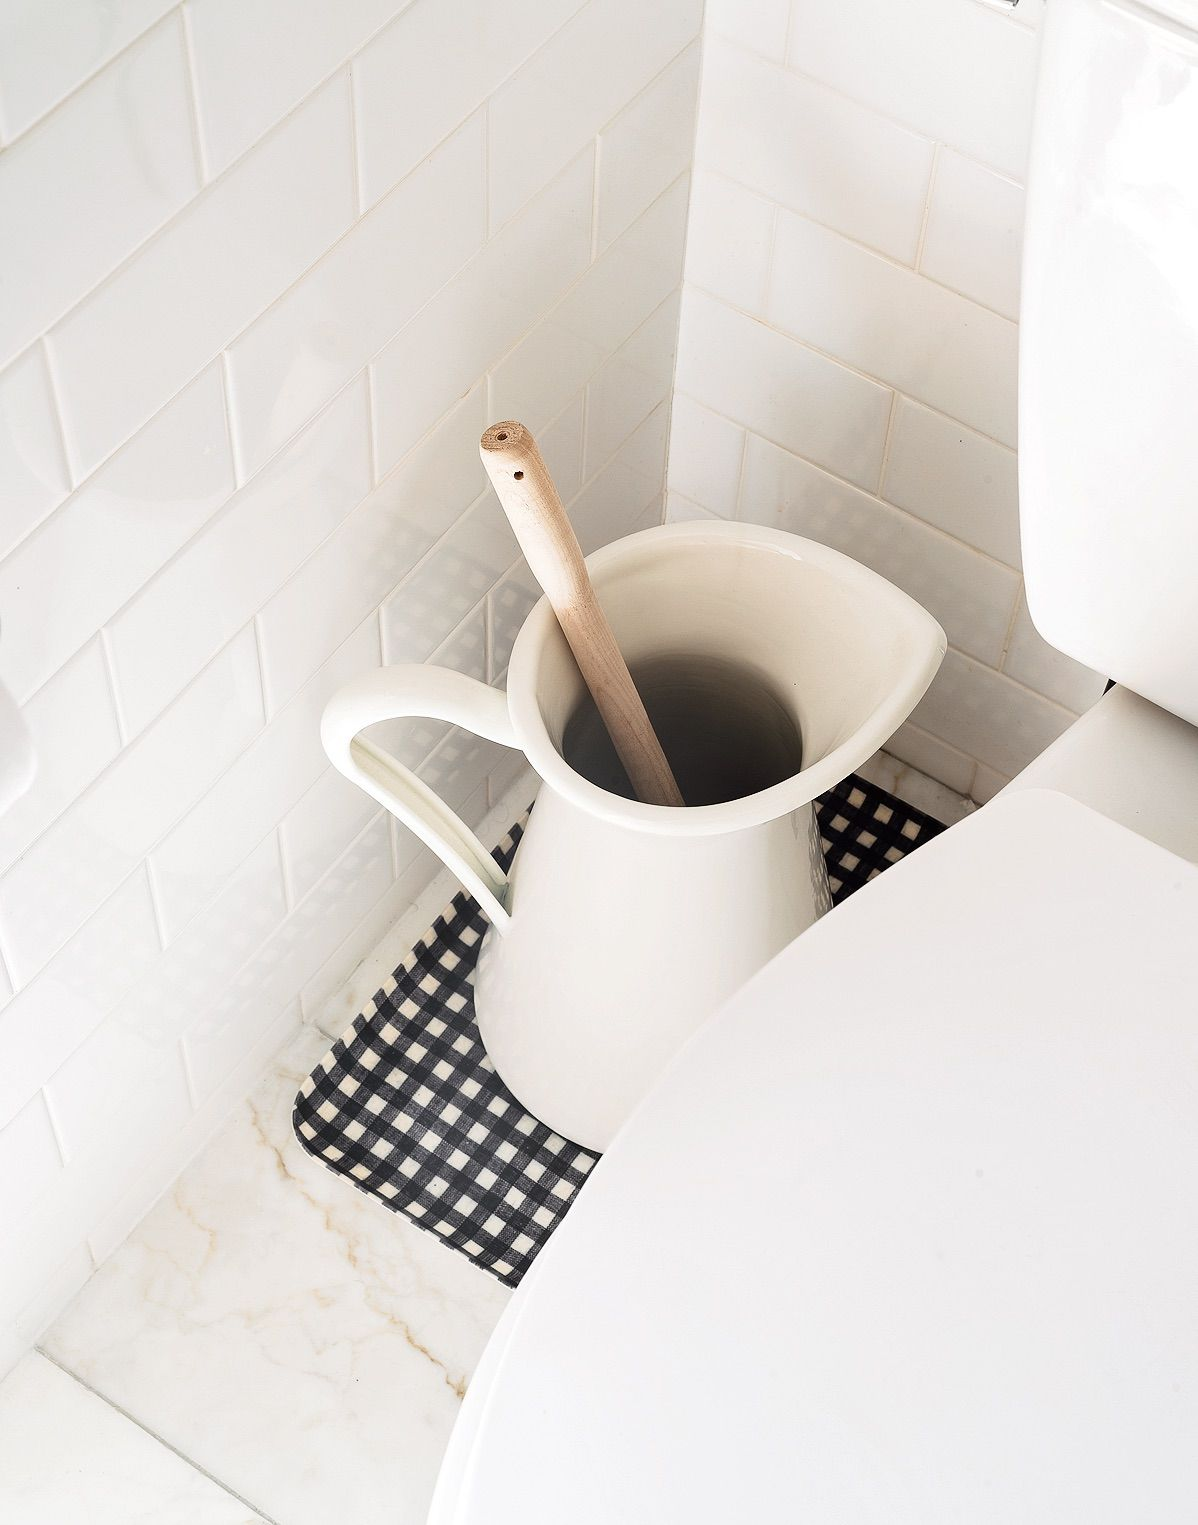 Aha Hack 3 Clever And Attractive Ways To Store The Toilet Brush The Organized Home Toilet Brush Decor Essentials Everyday Essentials Products